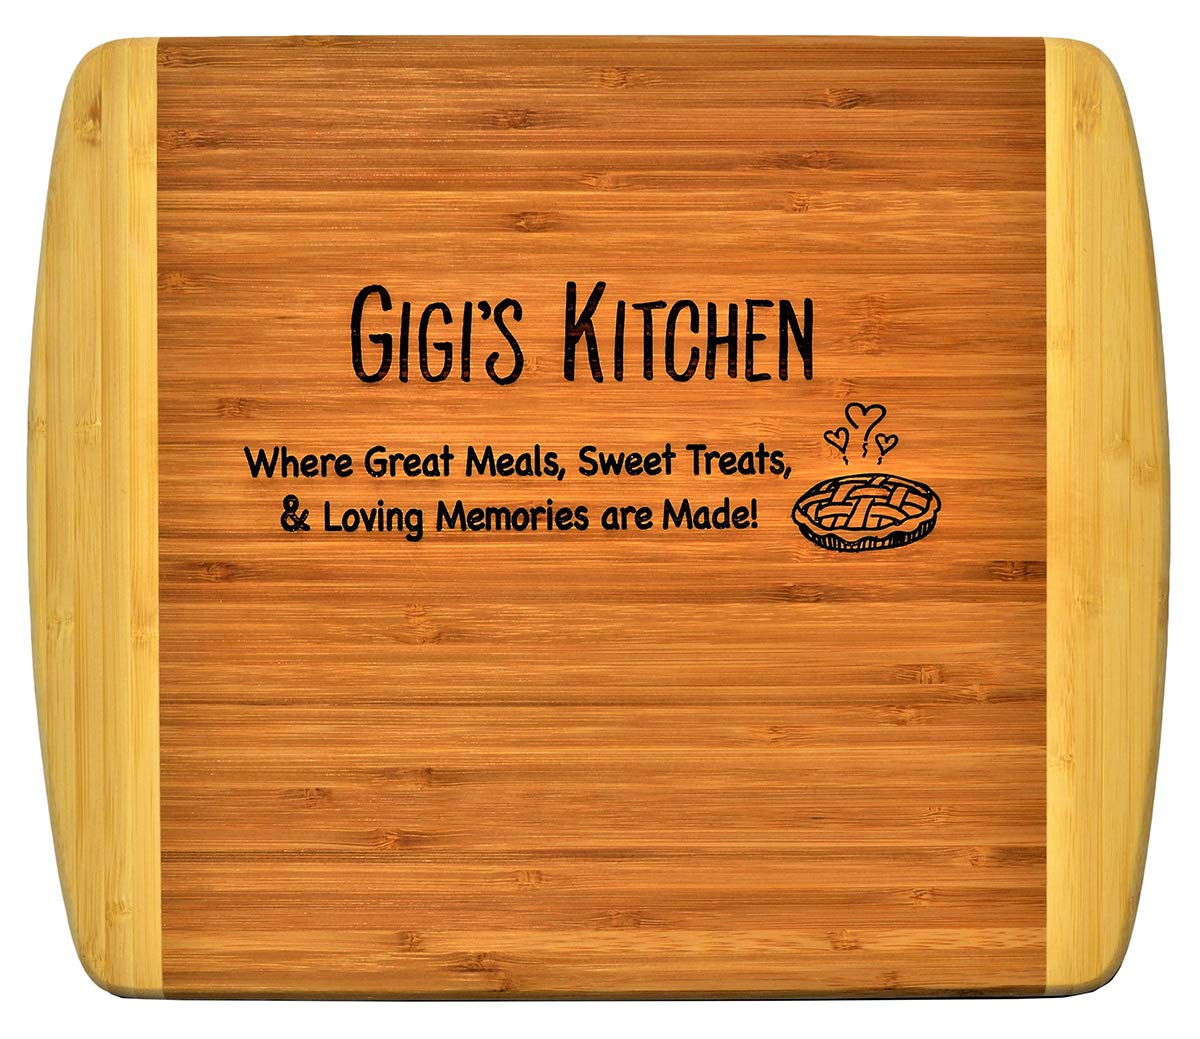 Gigi Gift Engraved 2 Tone Bamboo Cutting Board 2 Sided Kitchen Design Main Side For Decor Reverse Side For Usage Grandma Birthday Mother S Day Best Gigi Ever Xmas 11 1 2 X 13